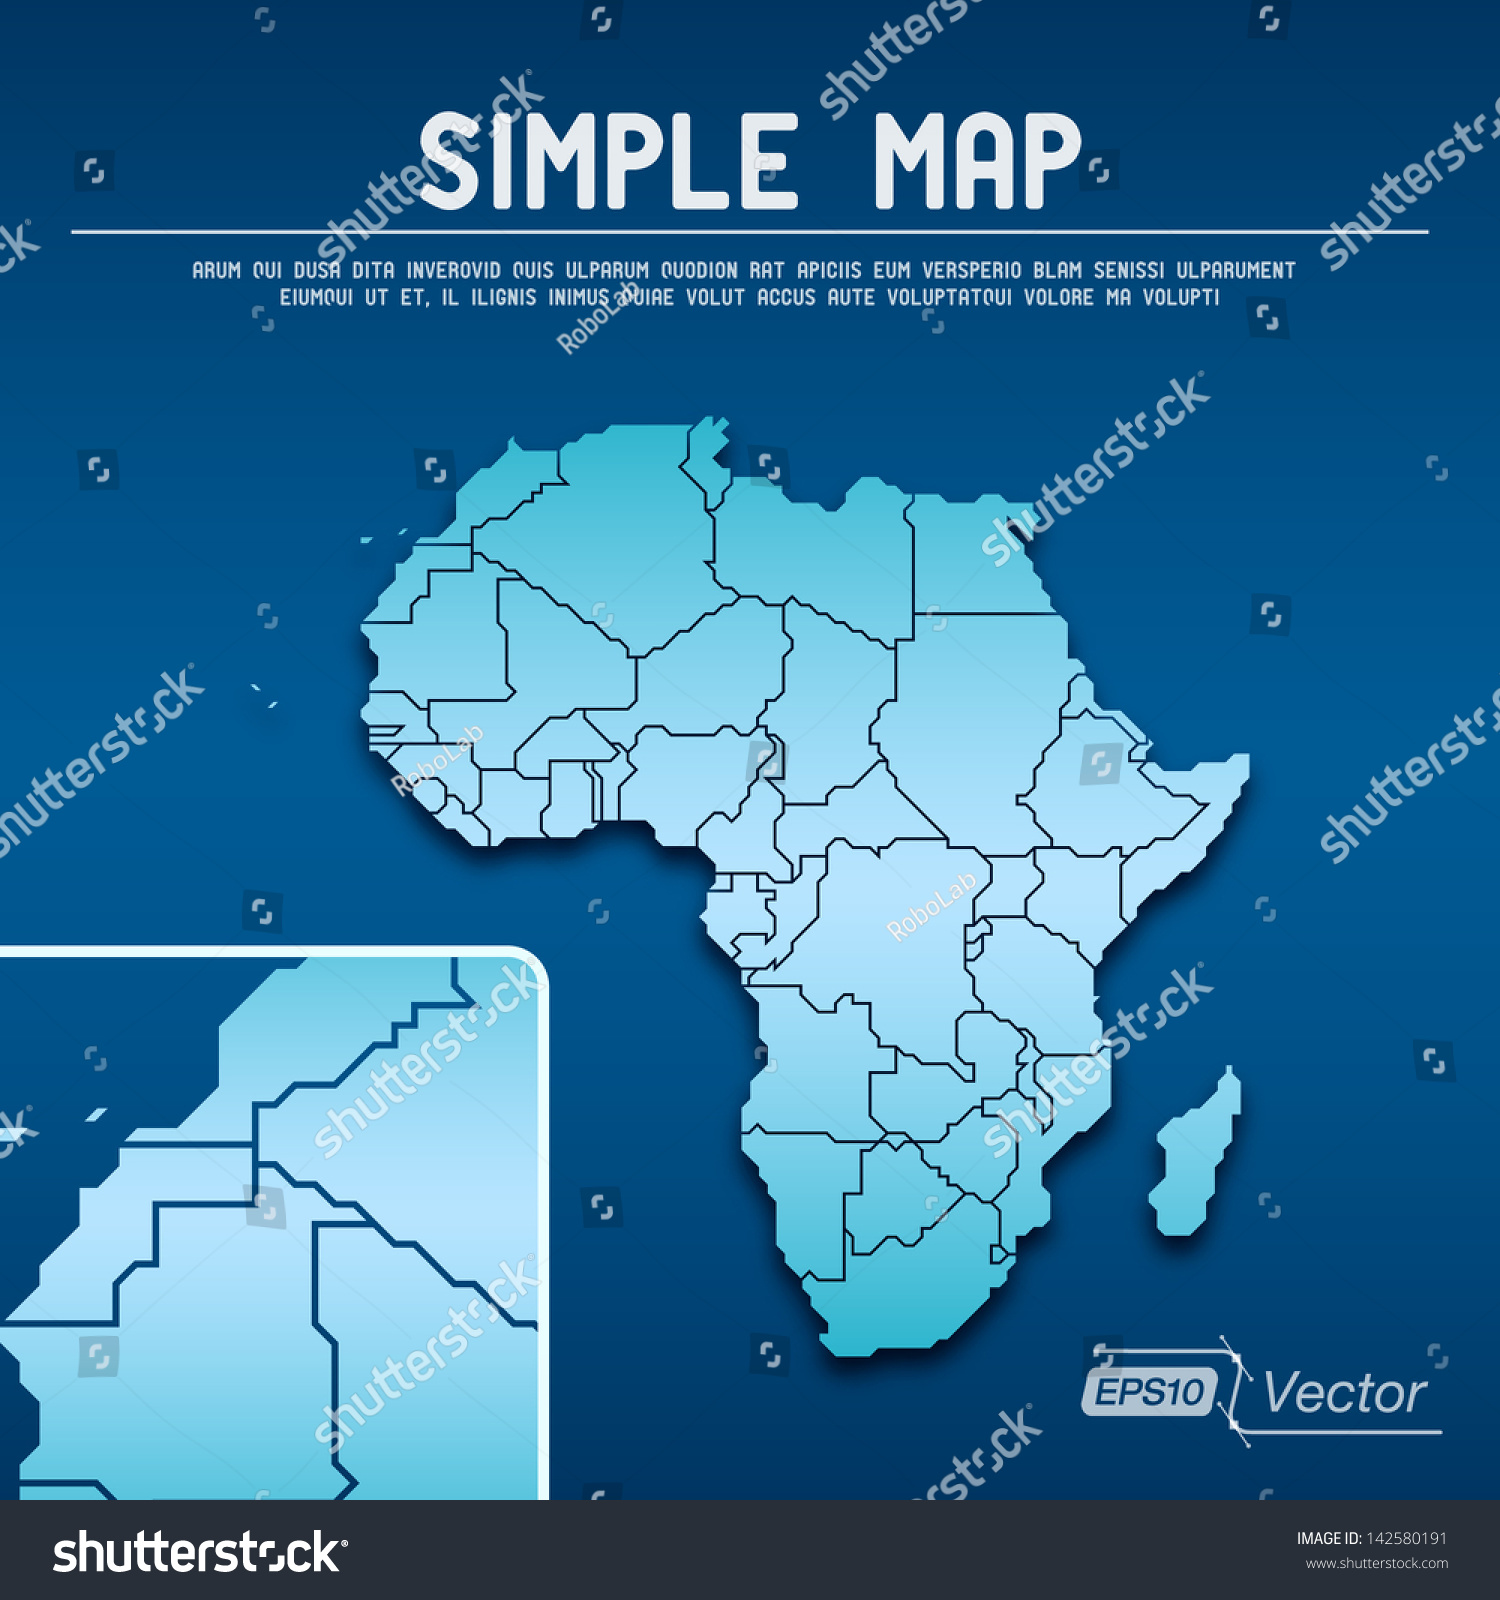 Abstract simple map eps10 vector design stock vector 142580191 abstract simple map eps10 vector design gumiabroncs Image collections